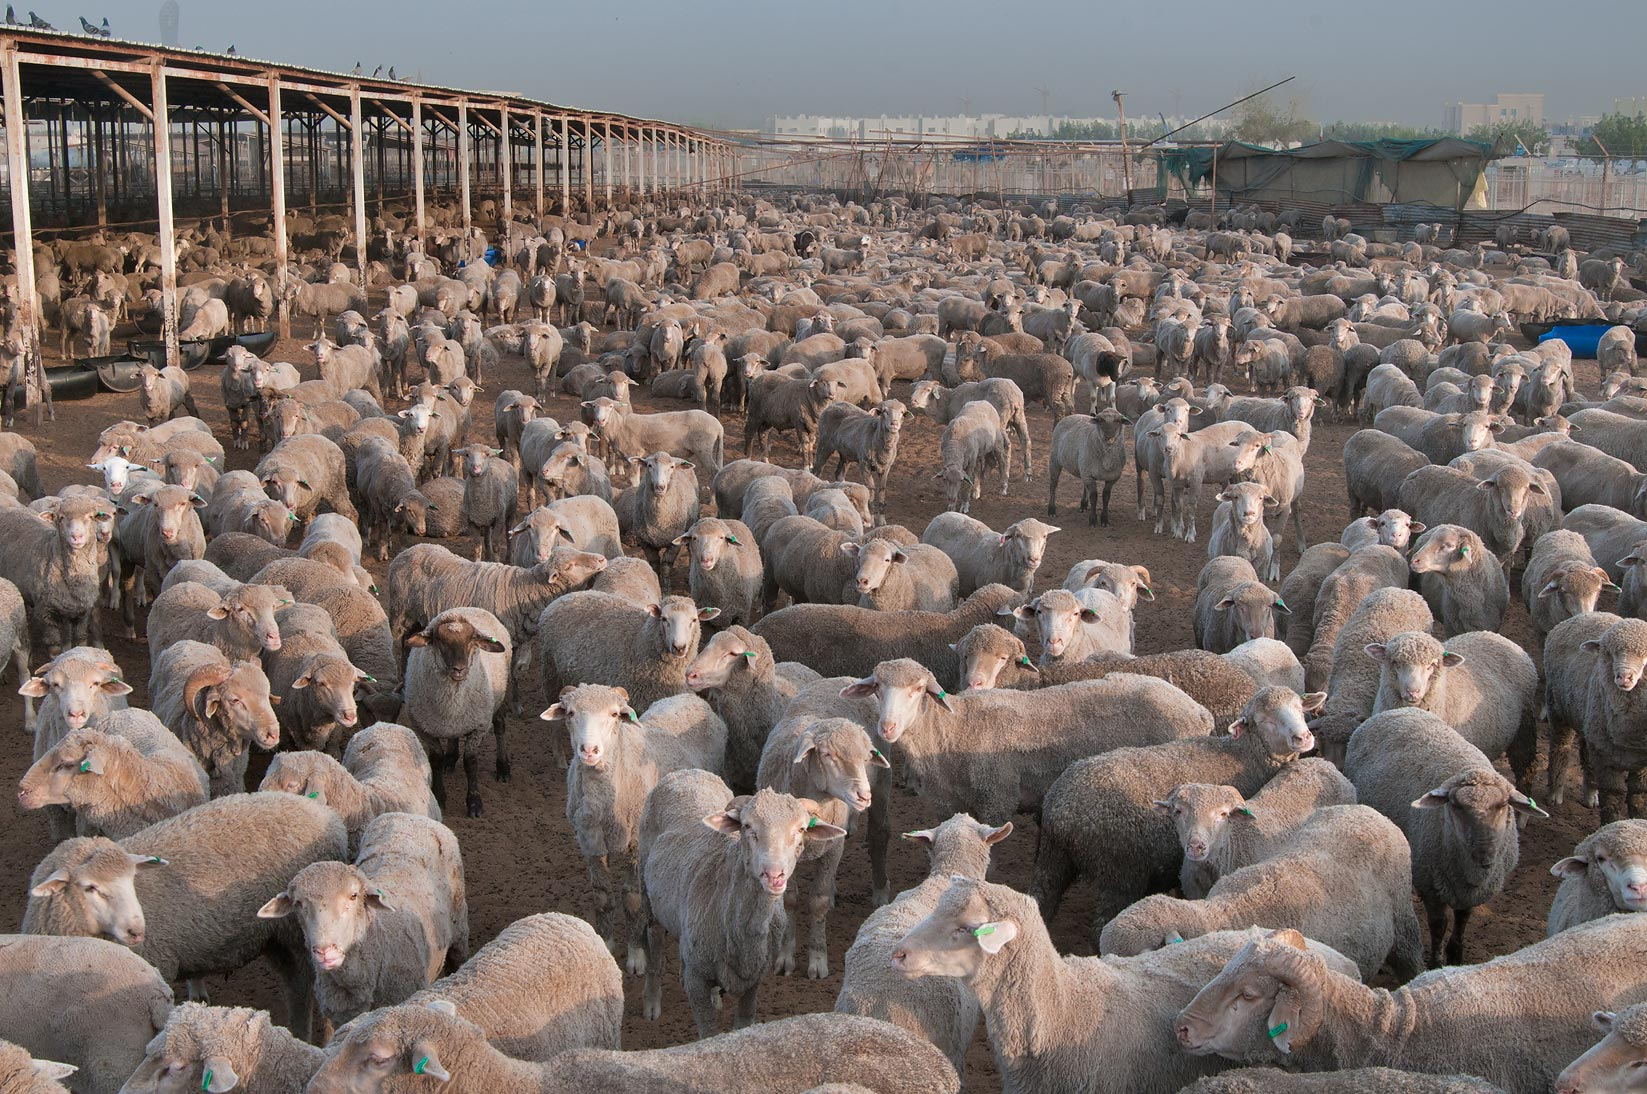 Australian sheep in a feedlot of Animal and...Wholesale Markets area. Doha, Qatar